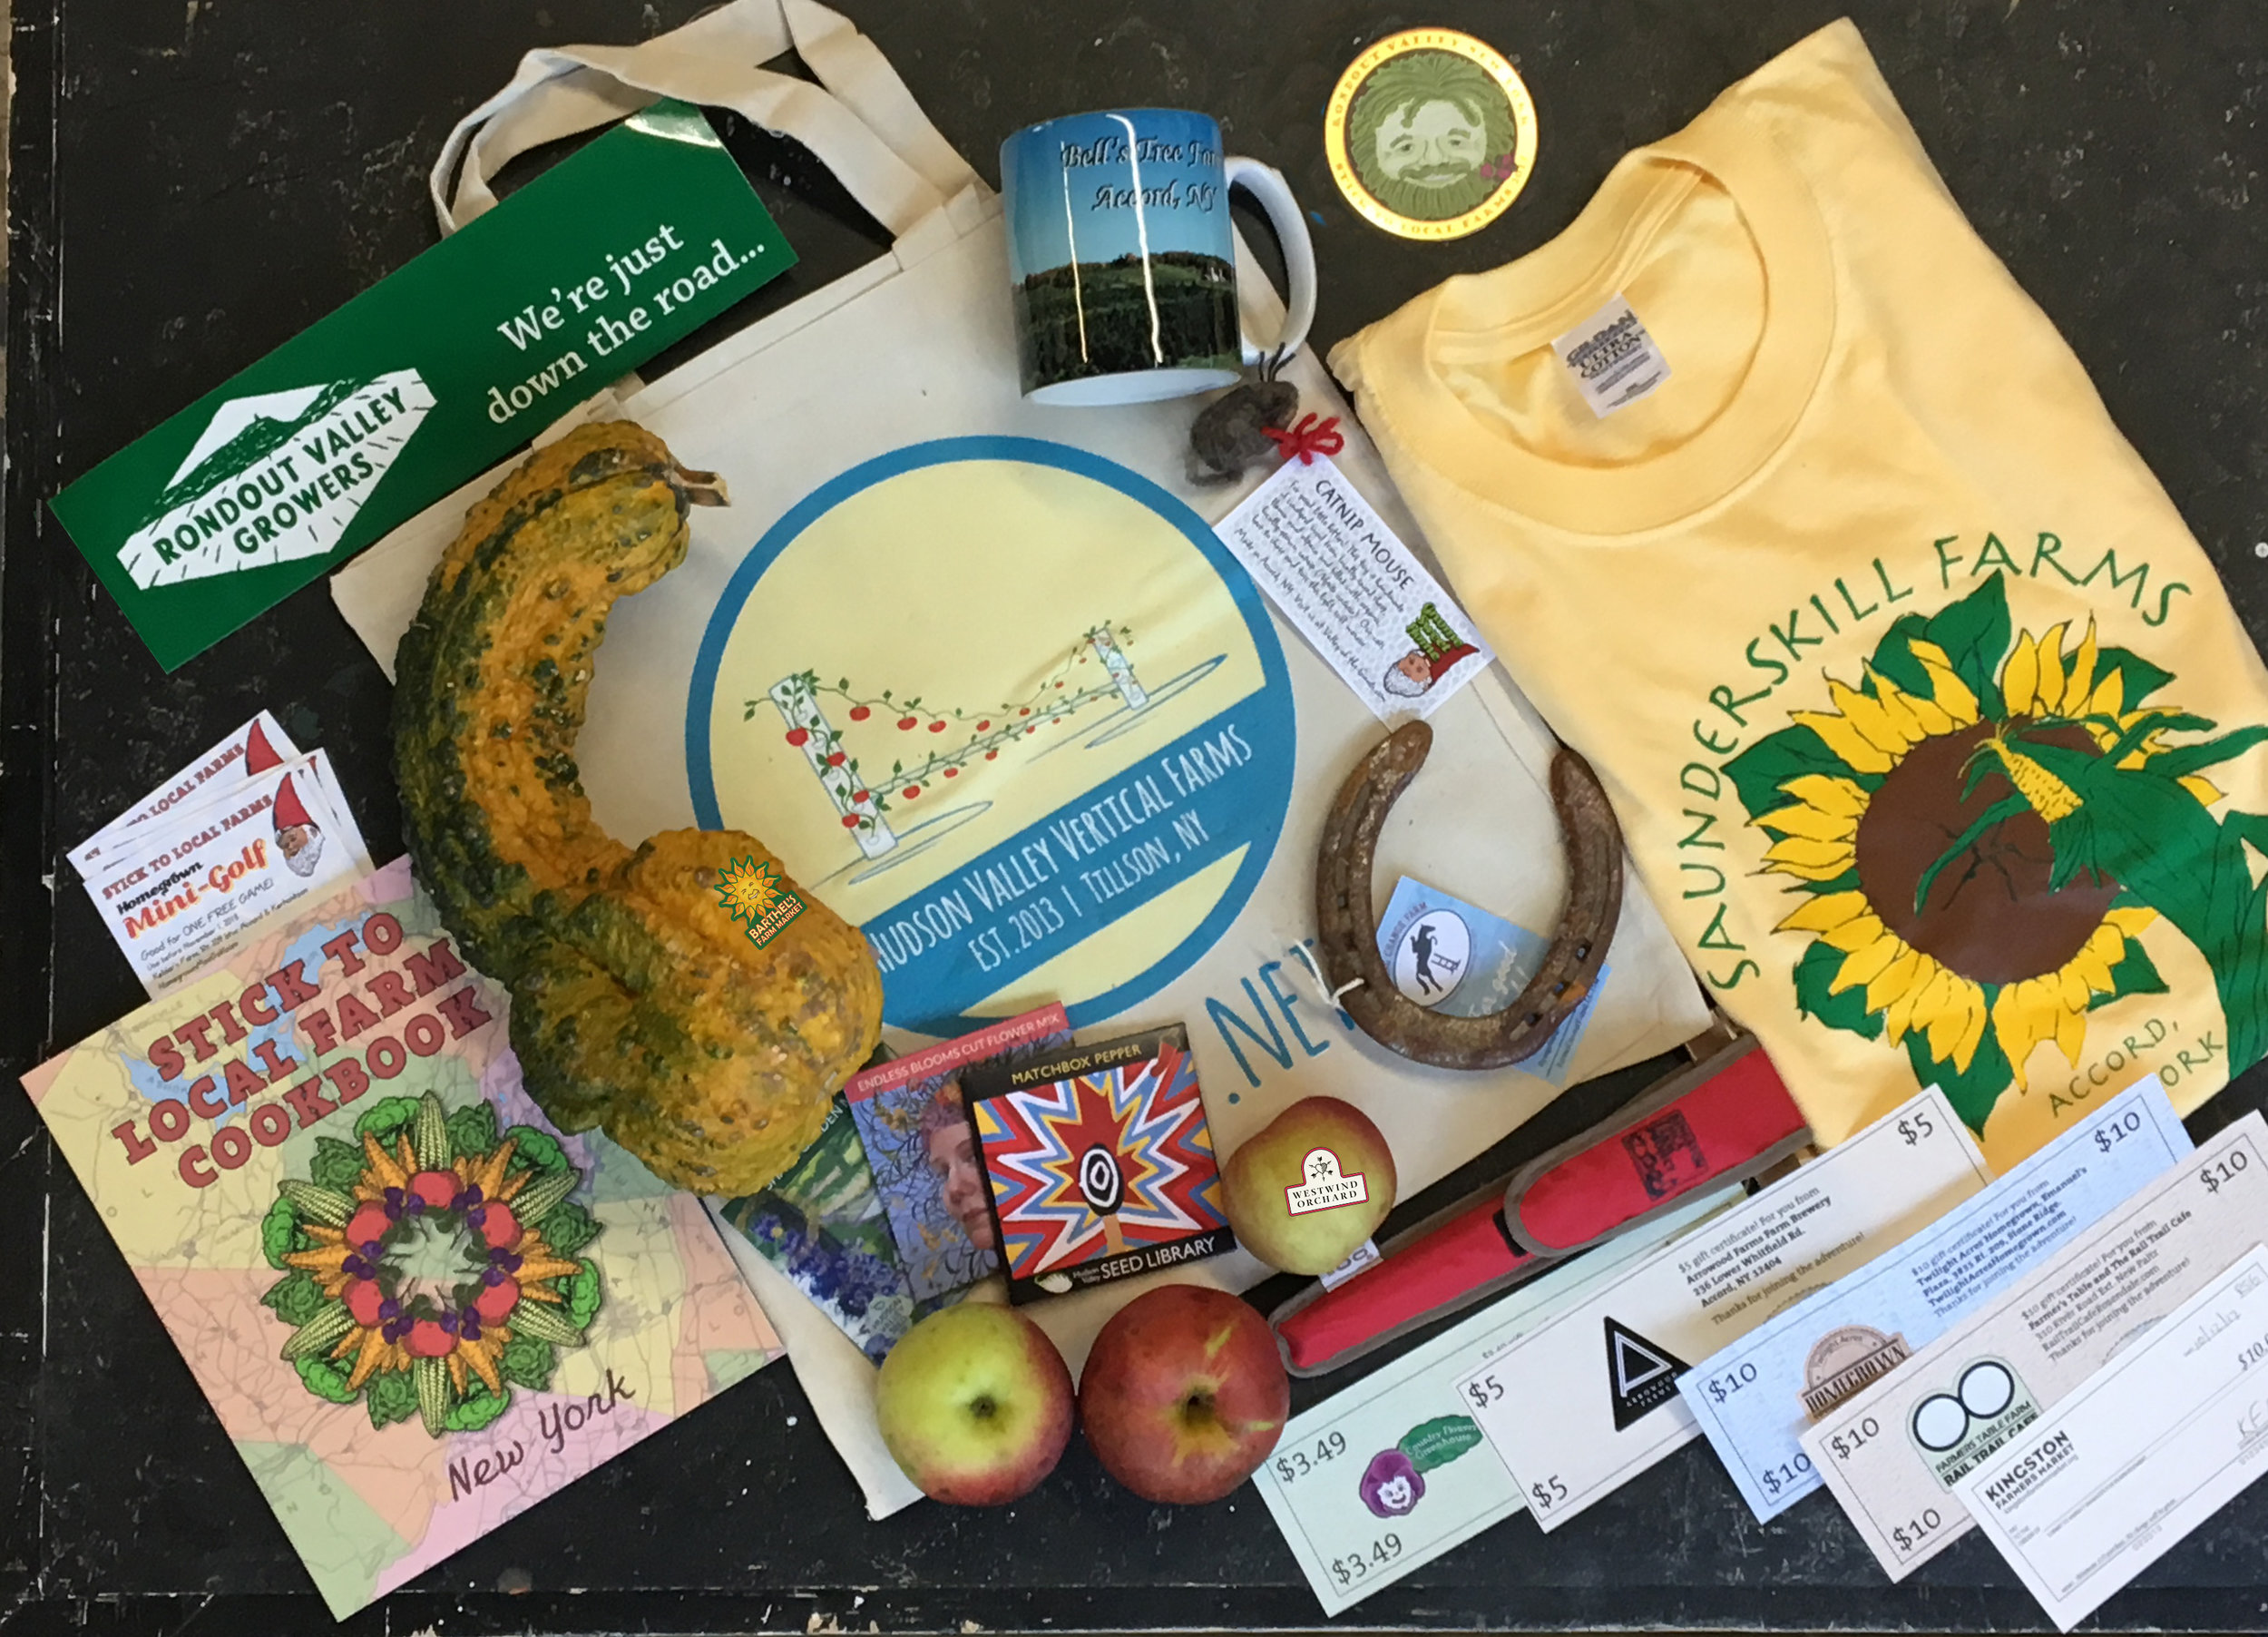 Collect 25 stickers and get a fabulous goodie bag. Here is a market bag awarded in 2017.  every market bag award will be a different surprise!